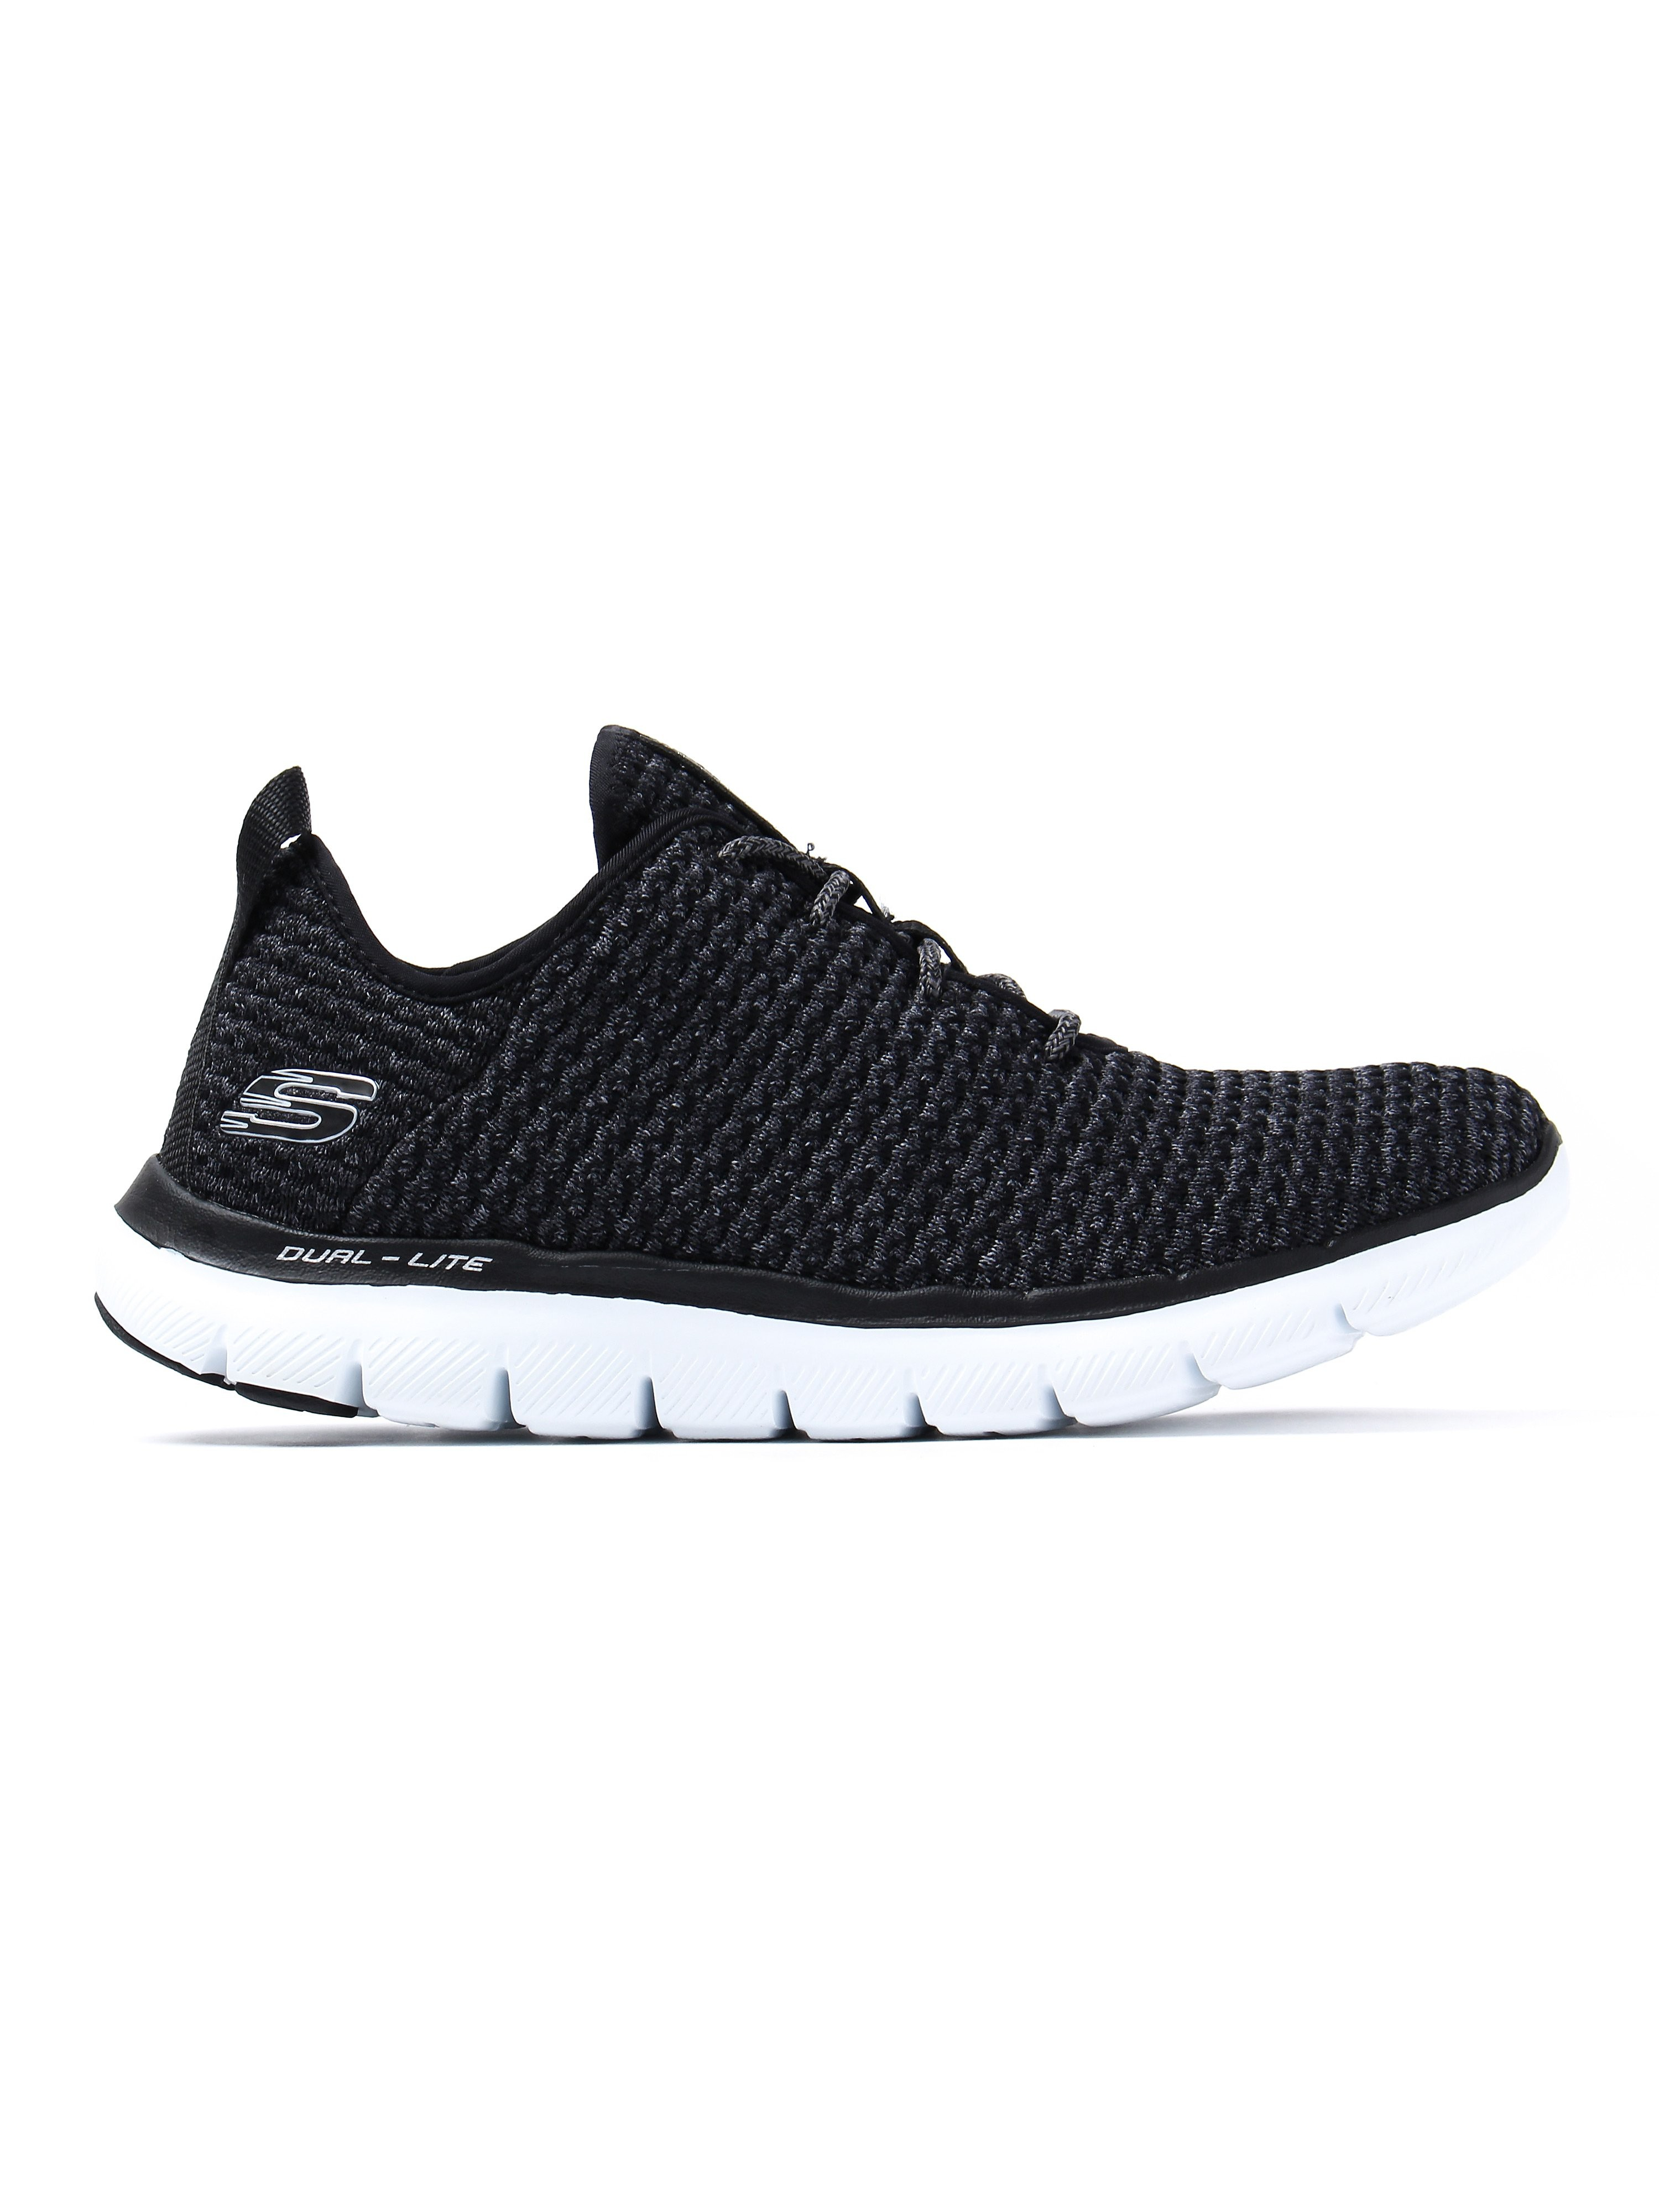 Skechers Women's Flex Appeal 2.0 Bold Move Trainers - Black / White